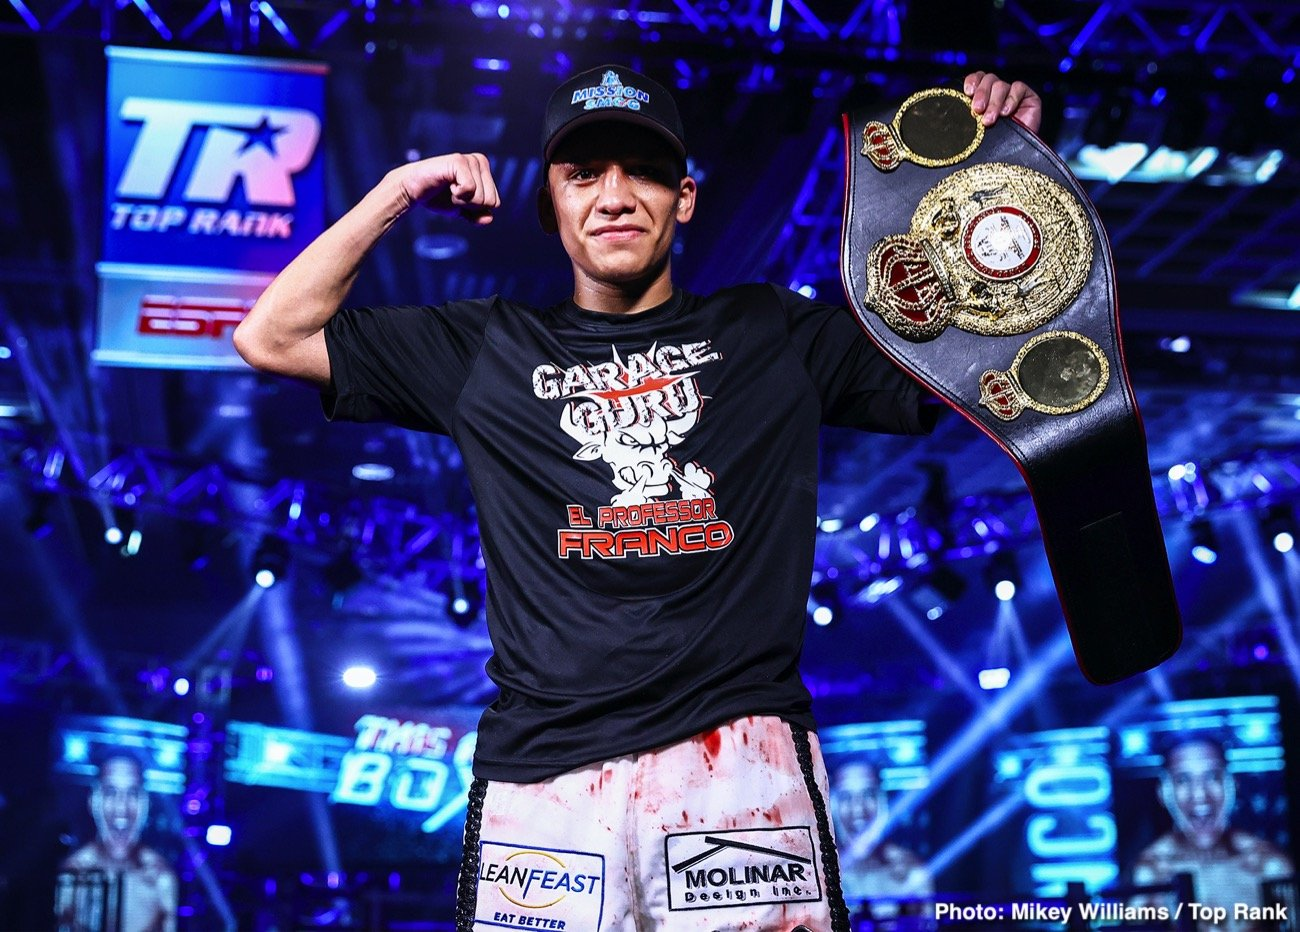 Miguel Contreras - According to the oddsmakers, it was an upset, but Joshua Franco (17-1-2, 8 KOs) was not surprised. Franco defeated Andrew Moloney via unanimous decision to win the WBA super flyweight world title Tuesday evening by scores of 115-112 and 114-113 2x.